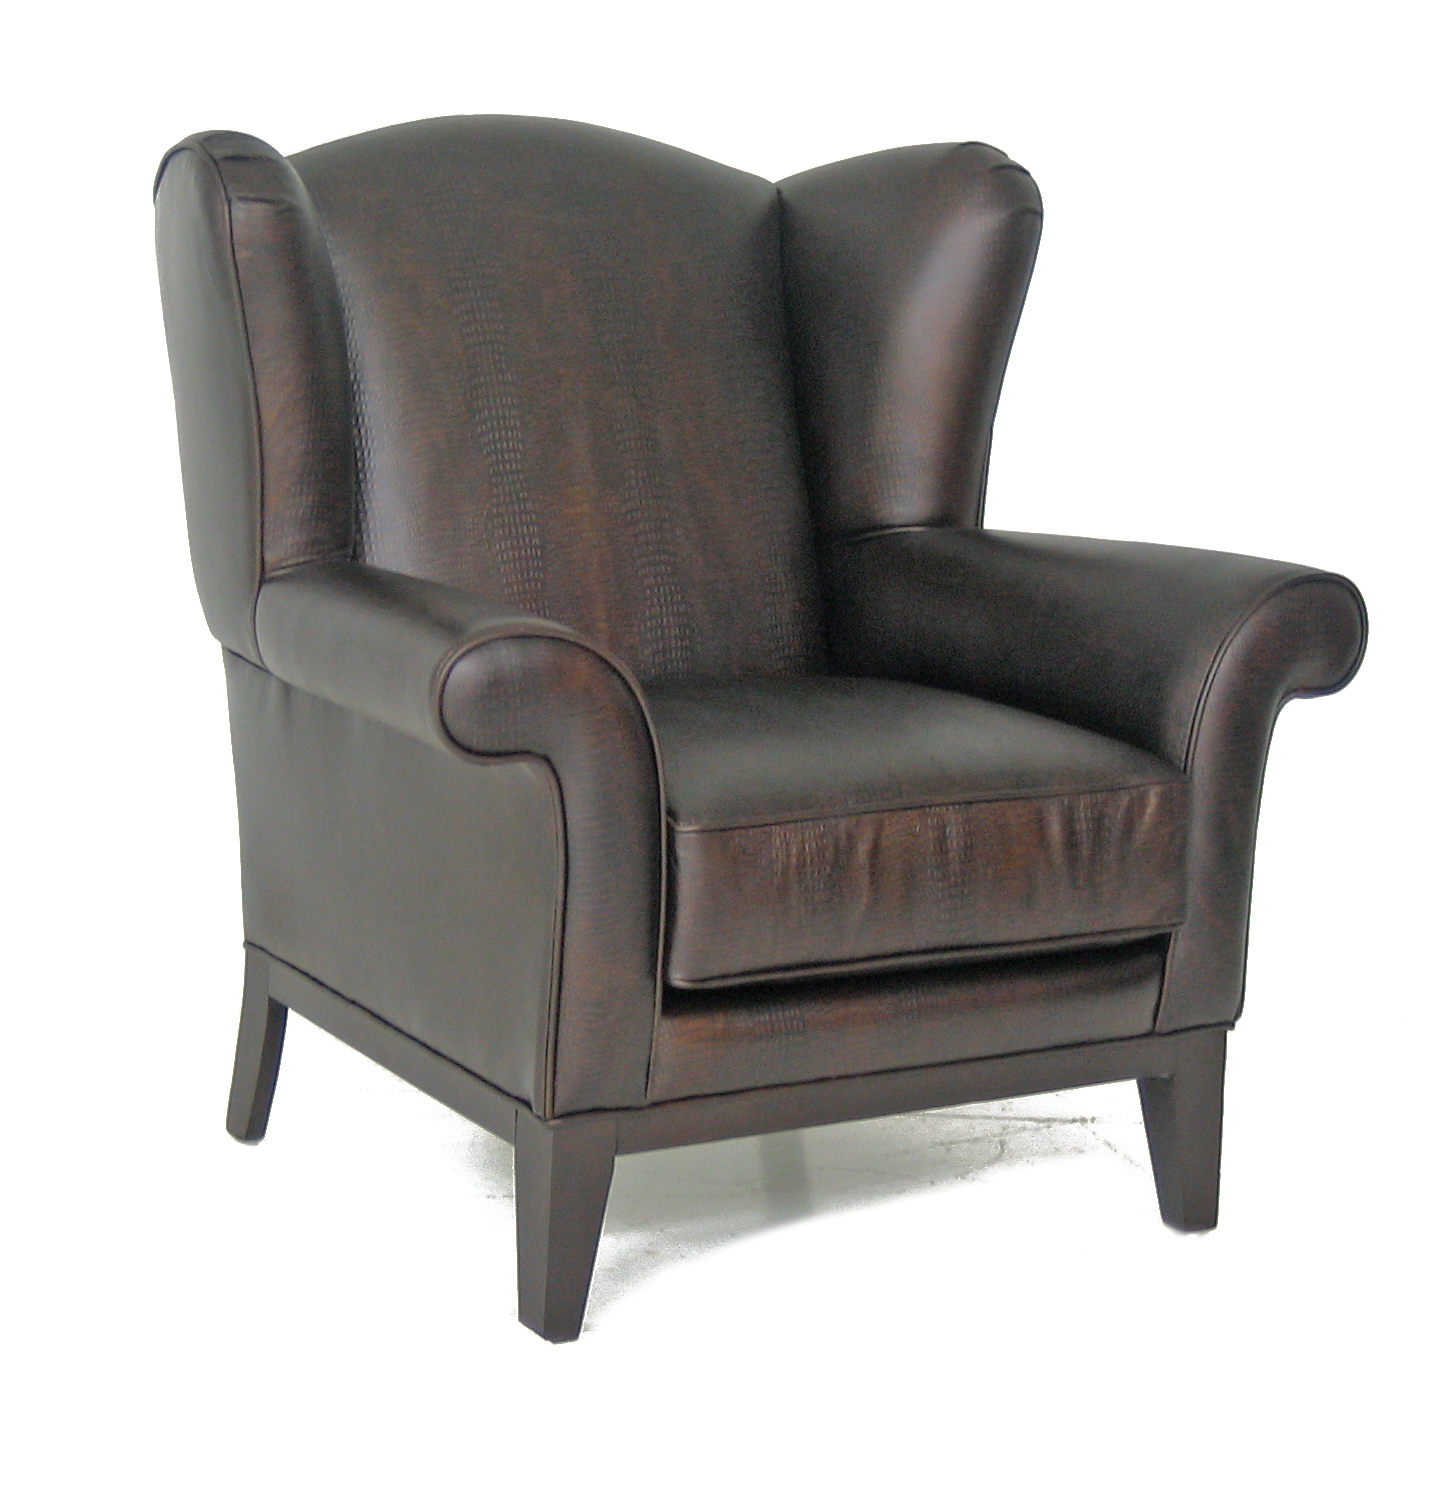 Images of sofa chair full size of ... bznfnhi